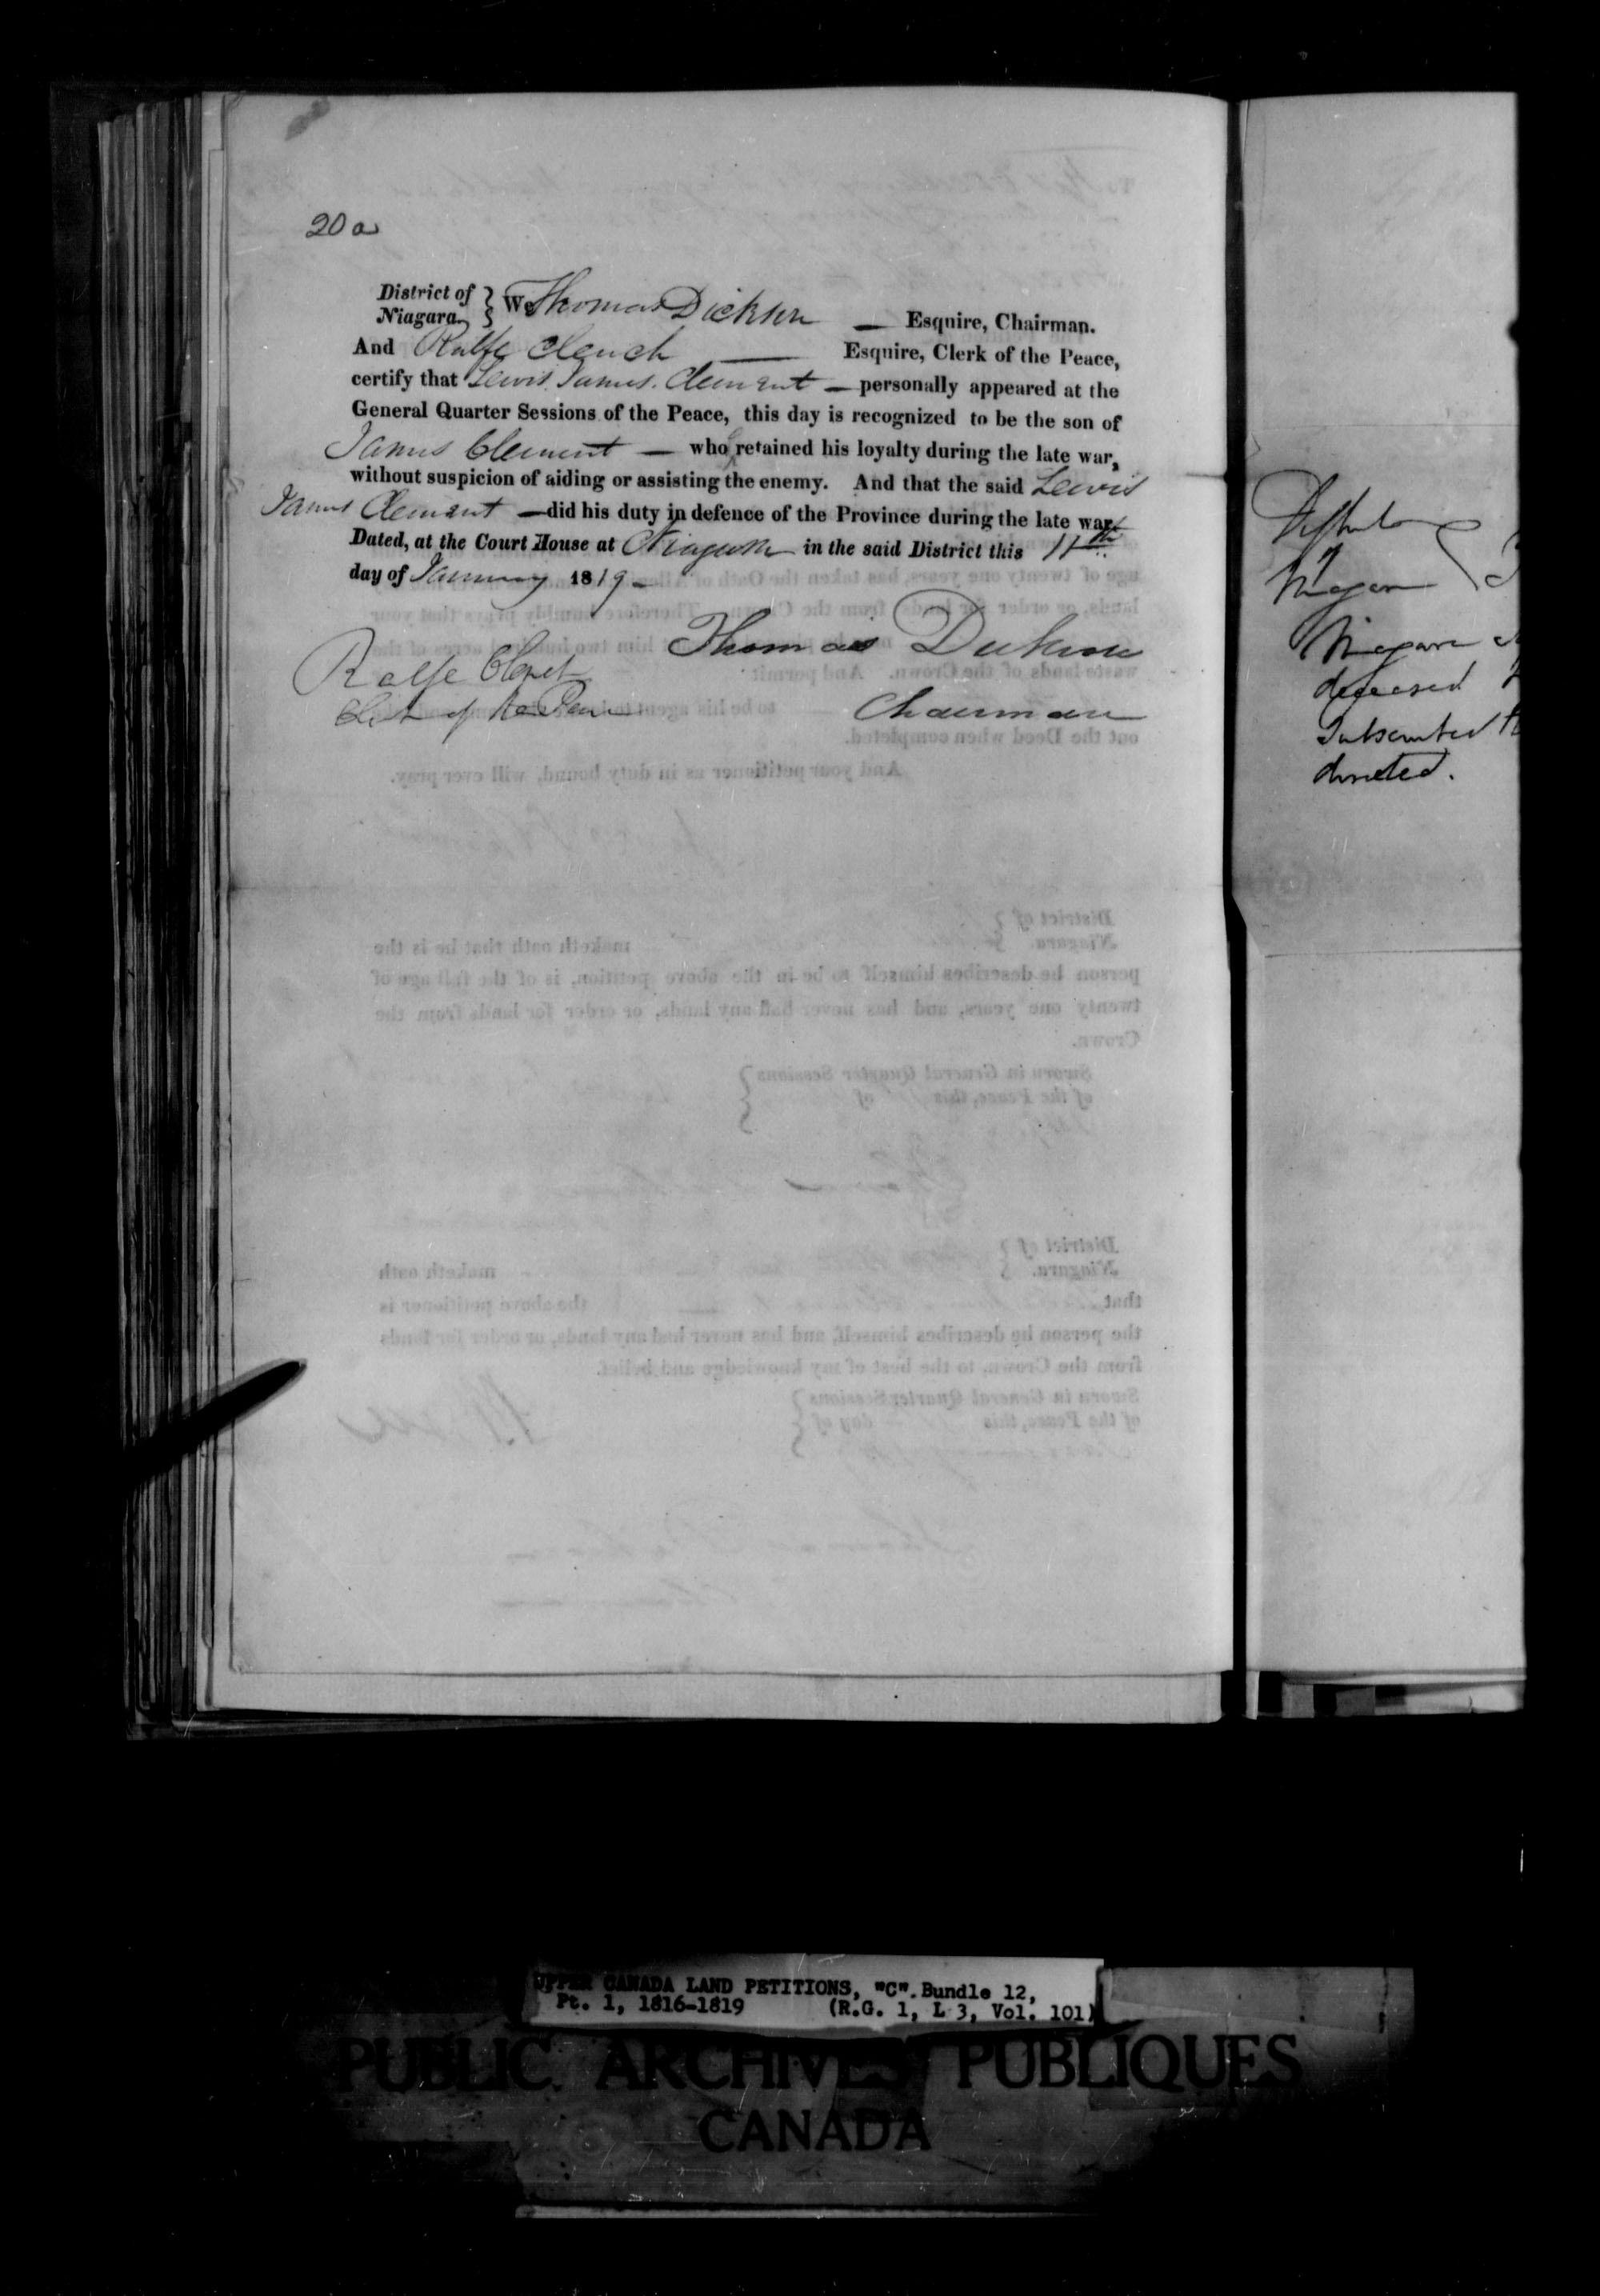 Title: Upper Canada Land Petitions (1763-1865) - Mikan Number: 205131 - Microform: c-1653